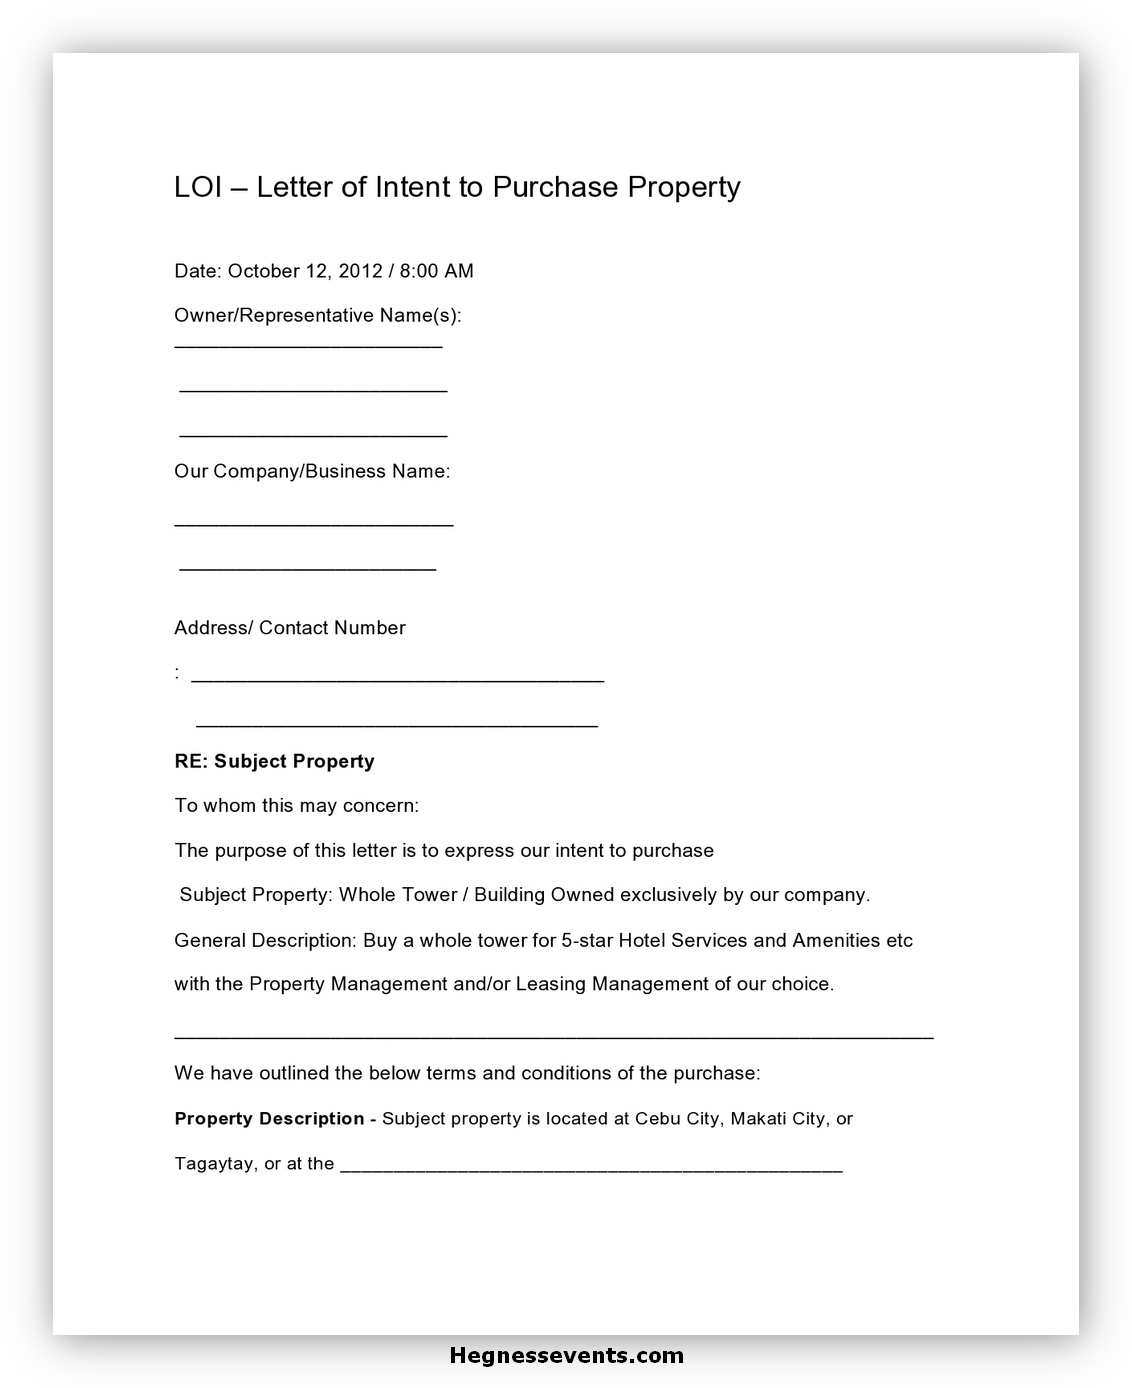 Real Estate Letter of Intent 05